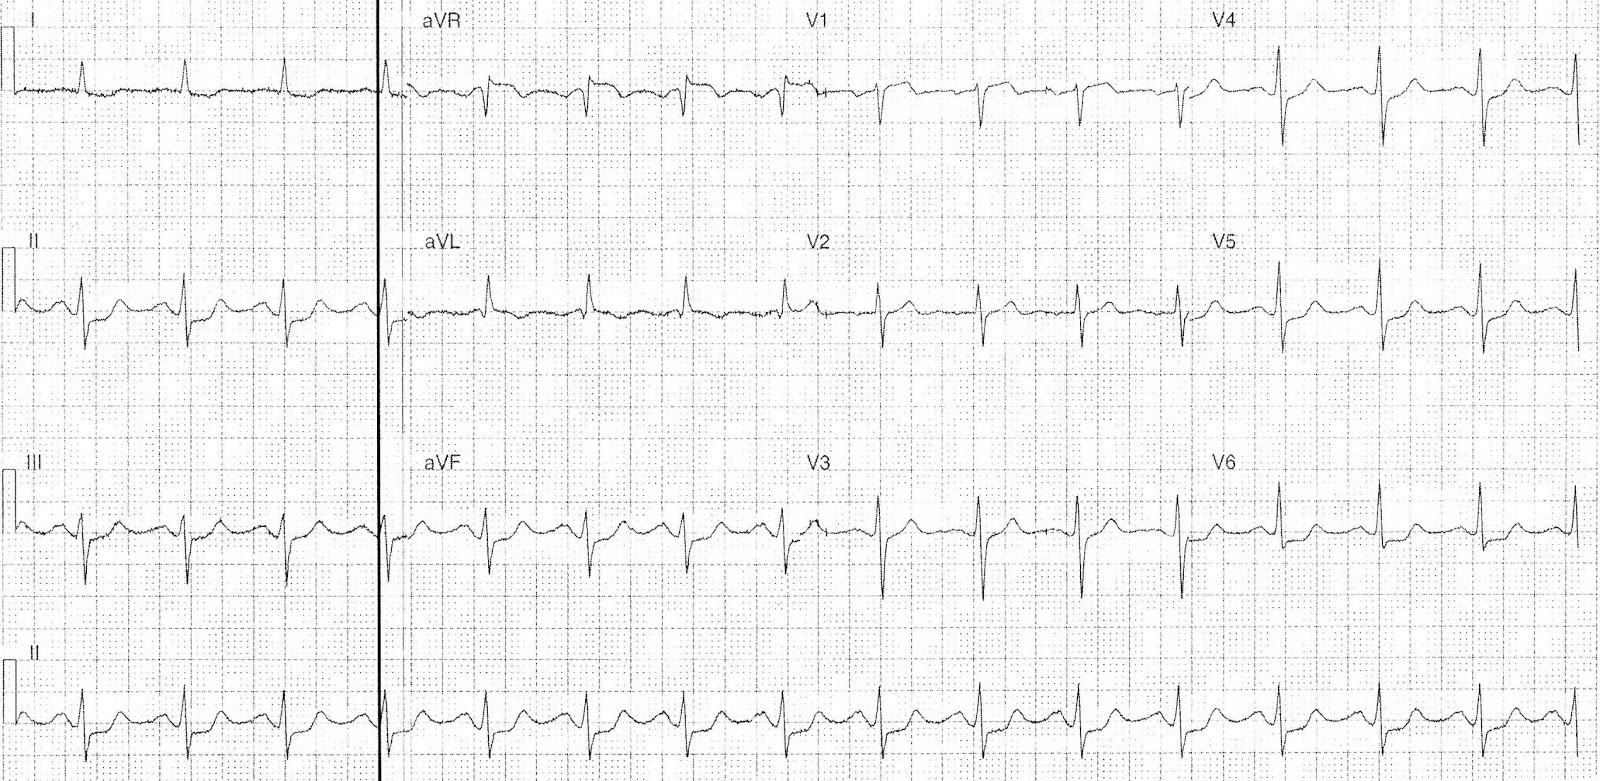 Pseudo Normalised T Waves Ecg Quest